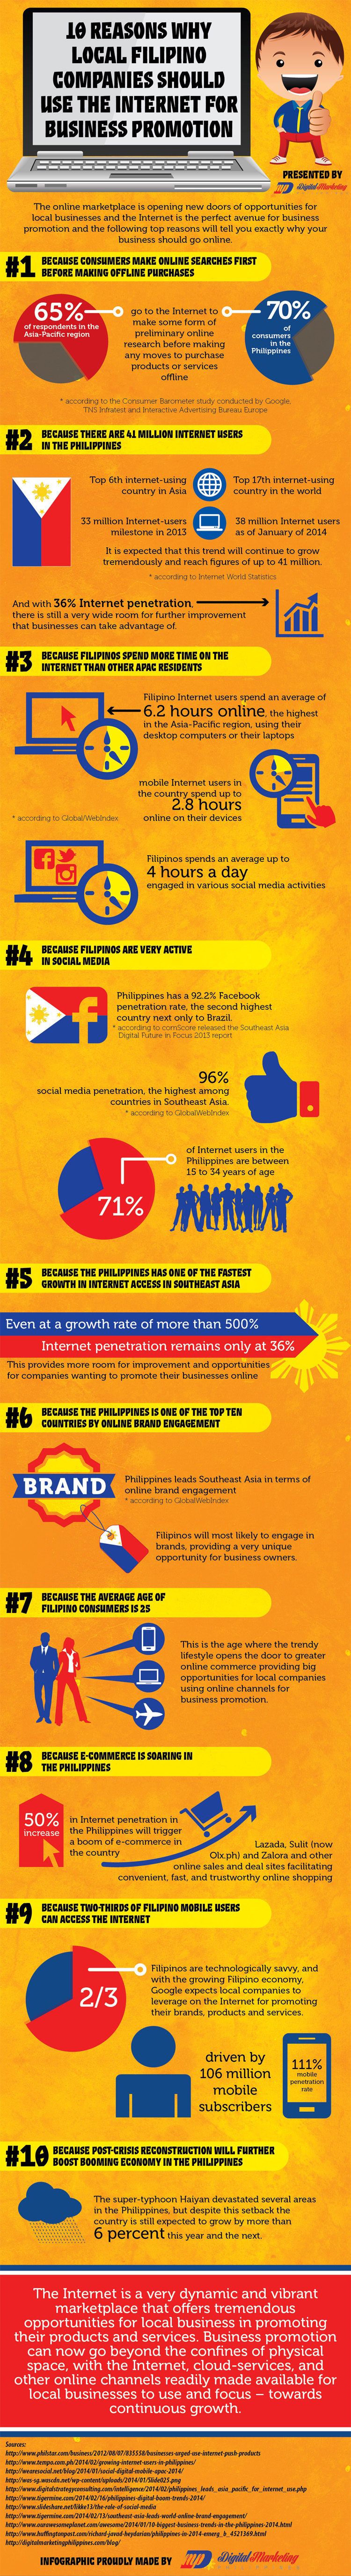 10 Reasons Why Local Filipino Companies Should Use the Internet for Business Promotion